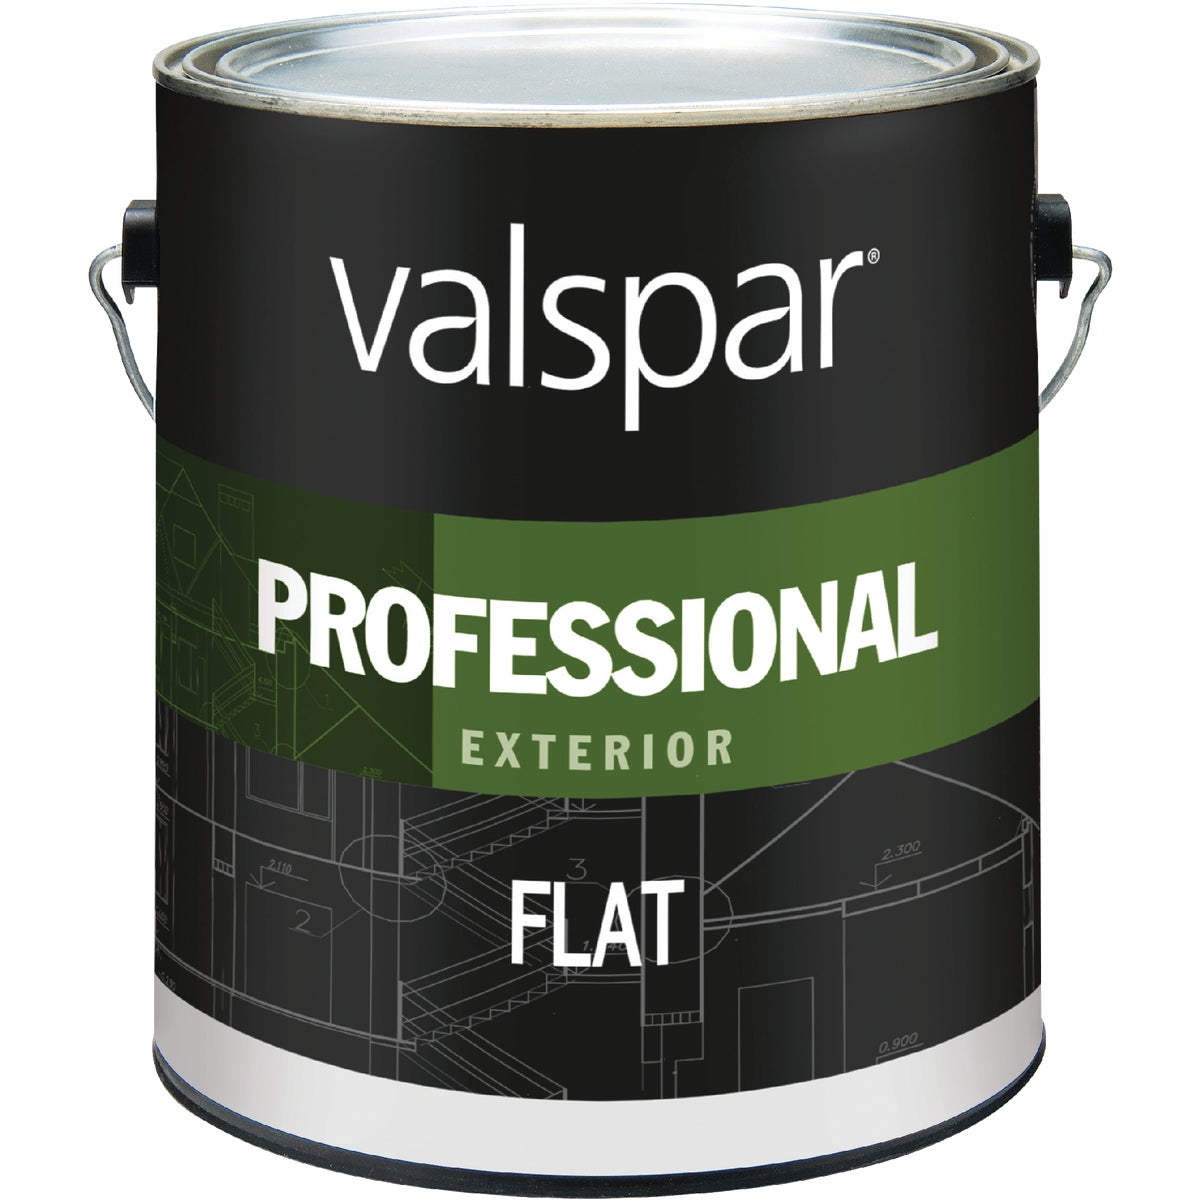 EXT FLAT NEUTRAL PAINT - 045.0012614.007 by Valspar Corp